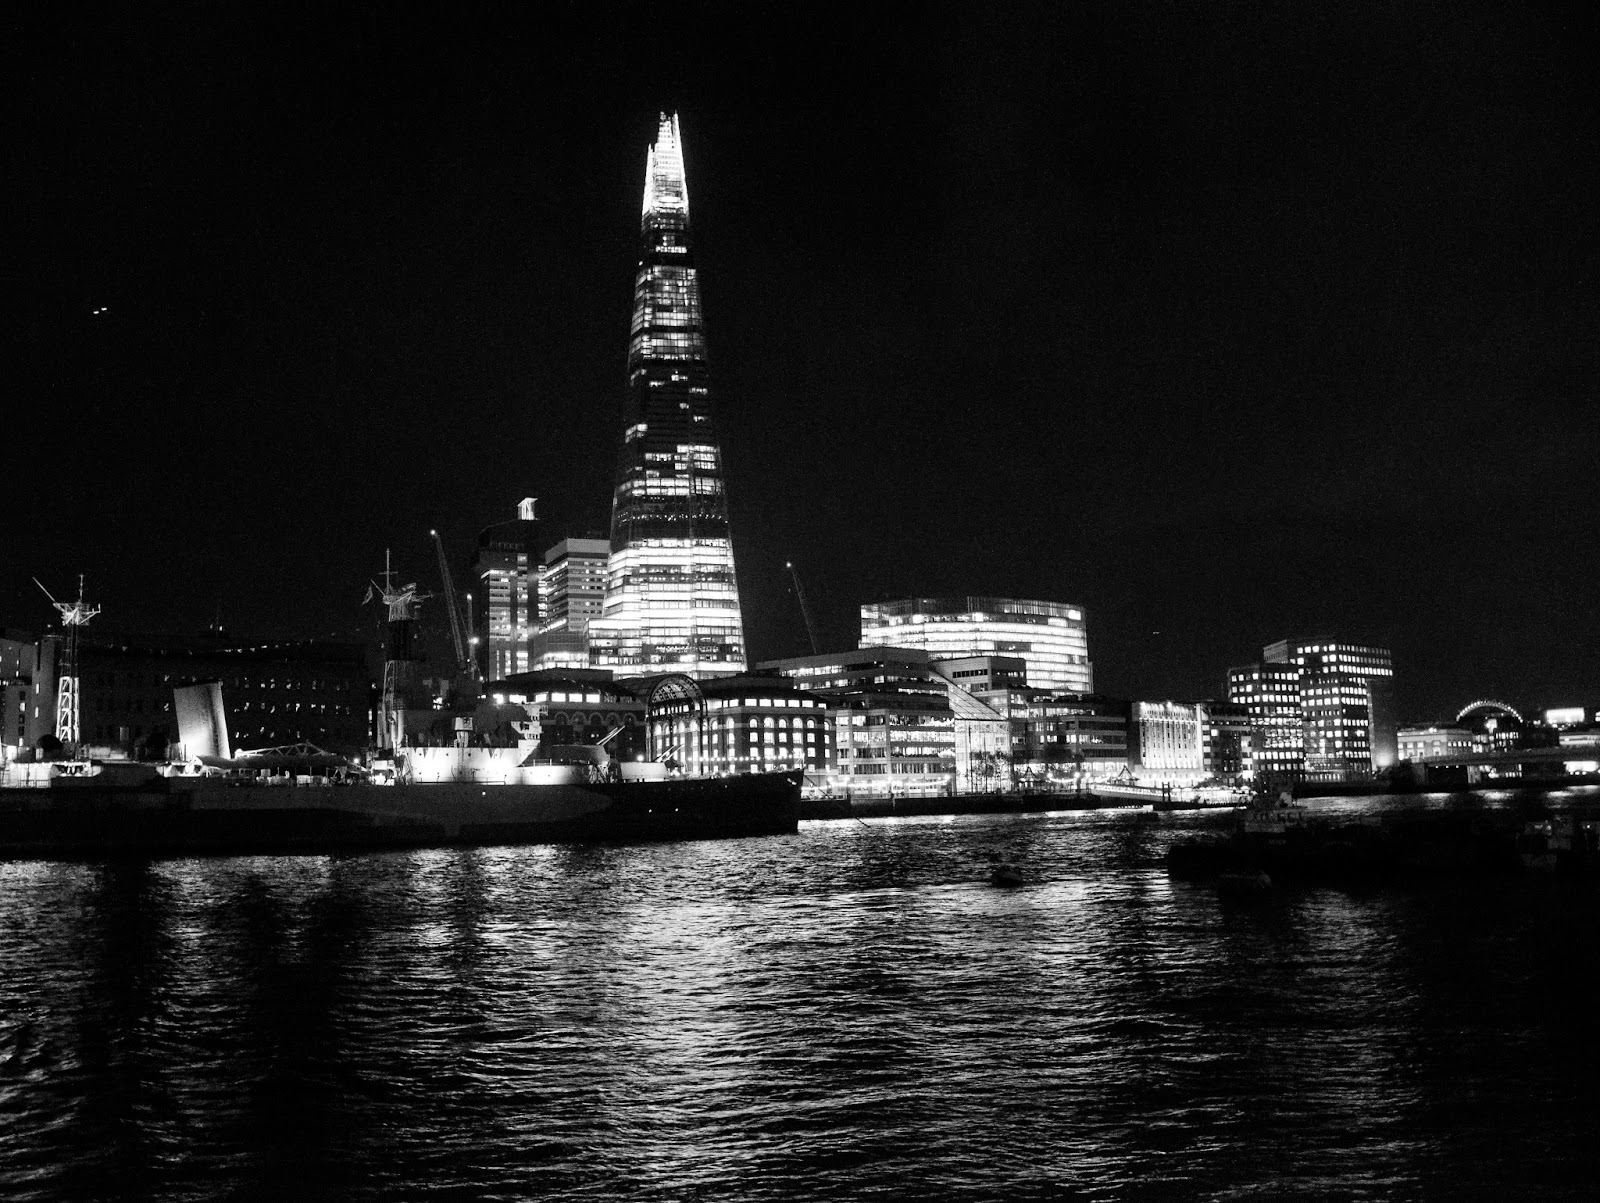 Monochrome London